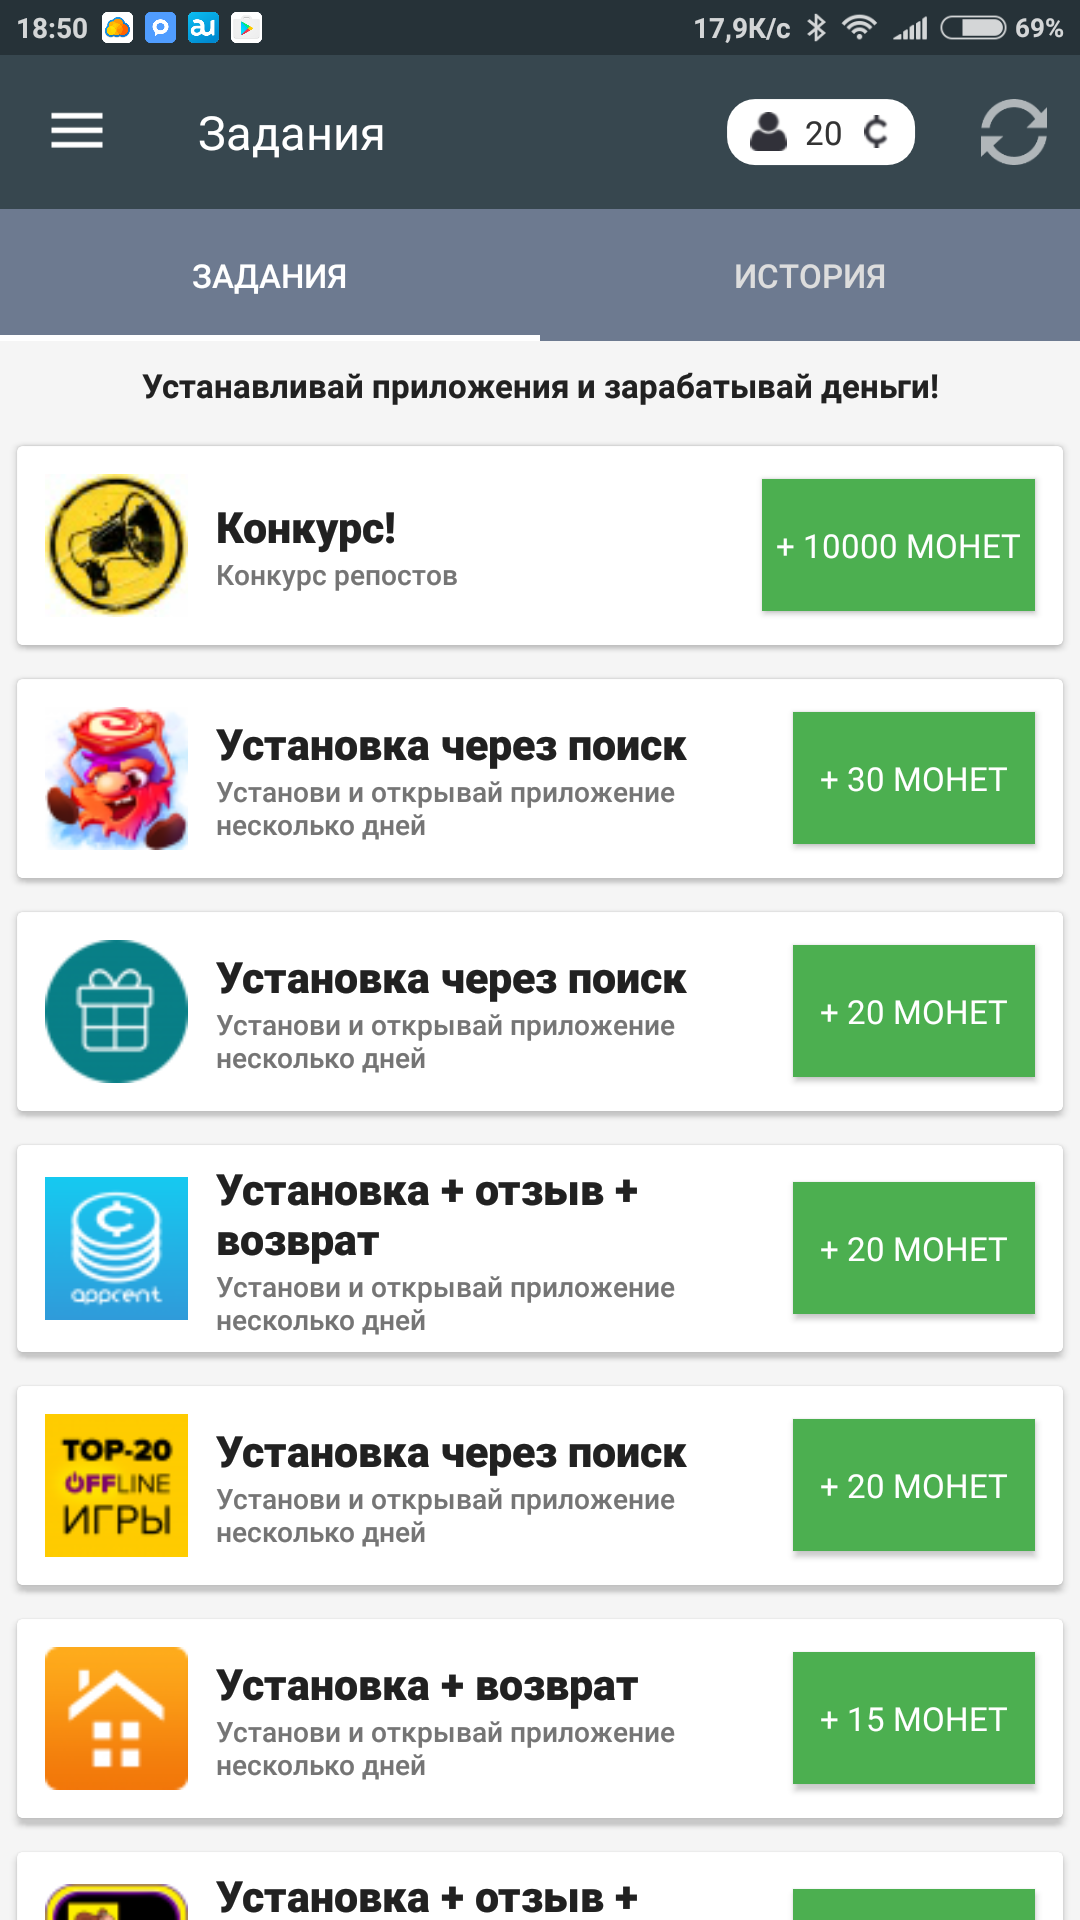 Задания AppCent Android